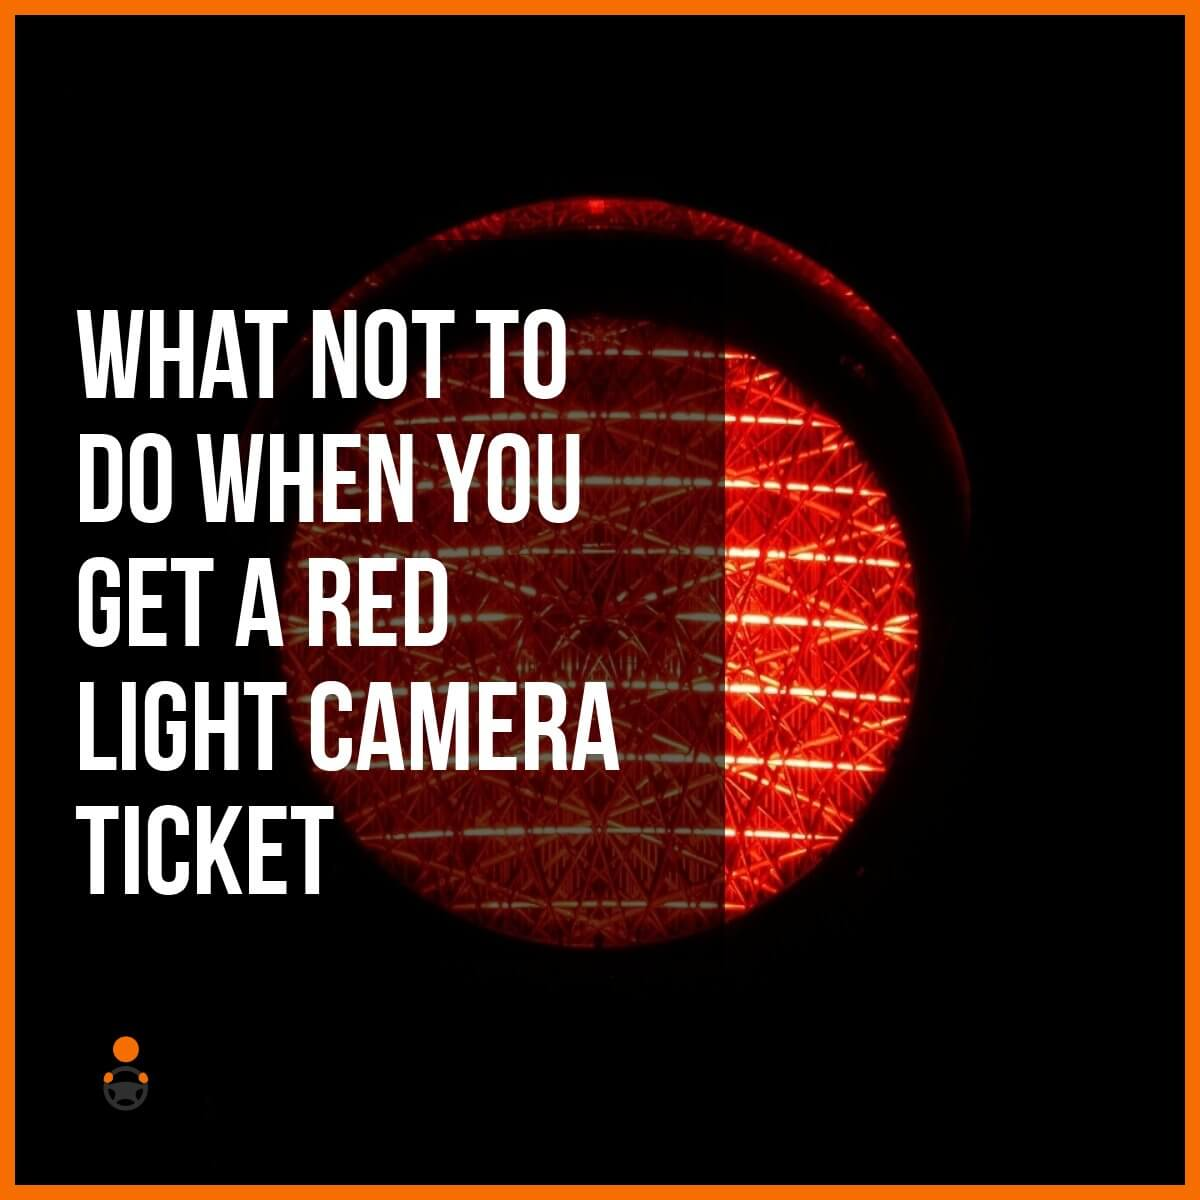 What Not to Do When You Get a Red Light Camera Ticket